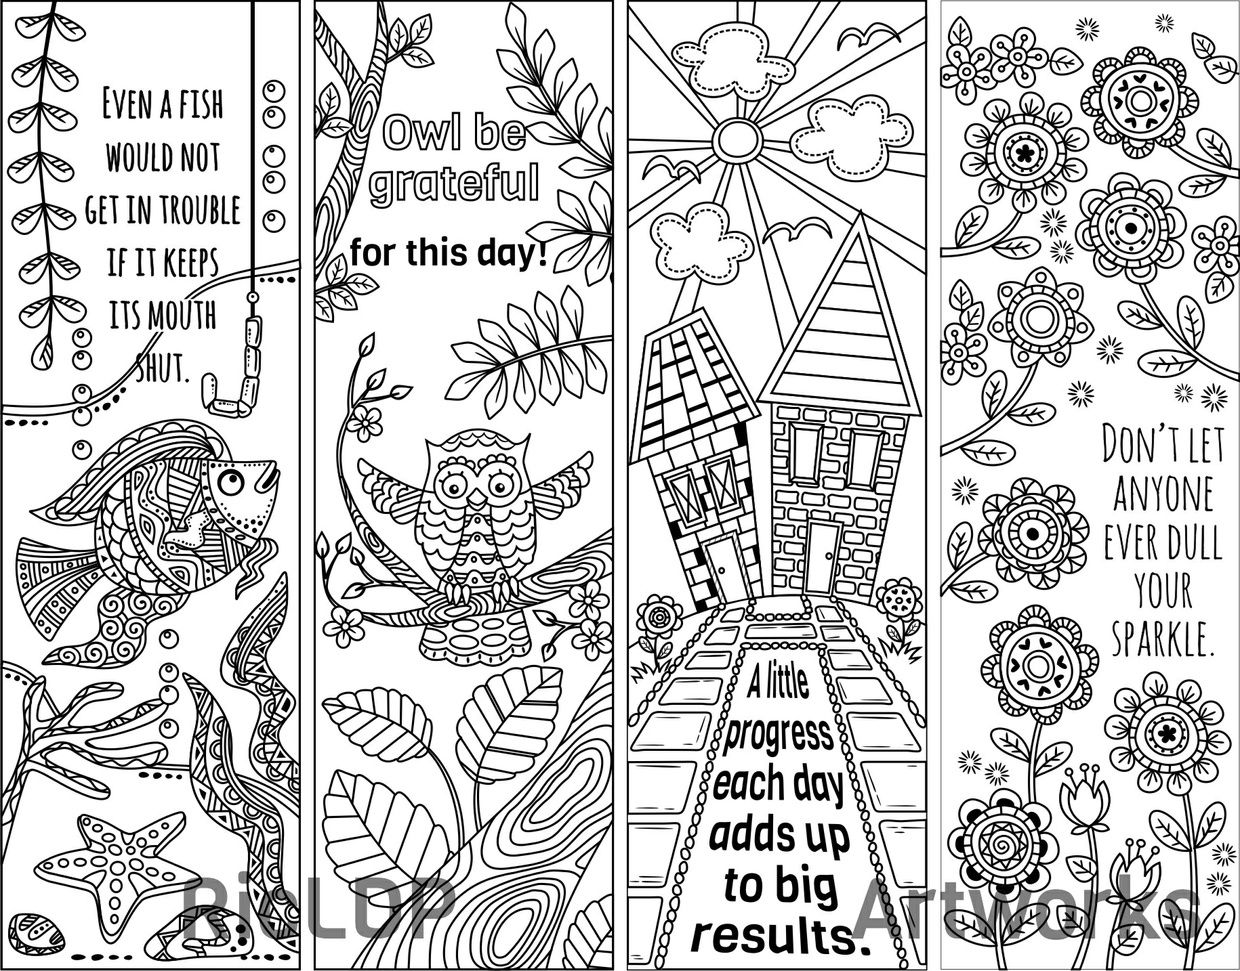 8 Coloring Bookmark Doodles with Quotes | Bookmarks, Doodles and ...